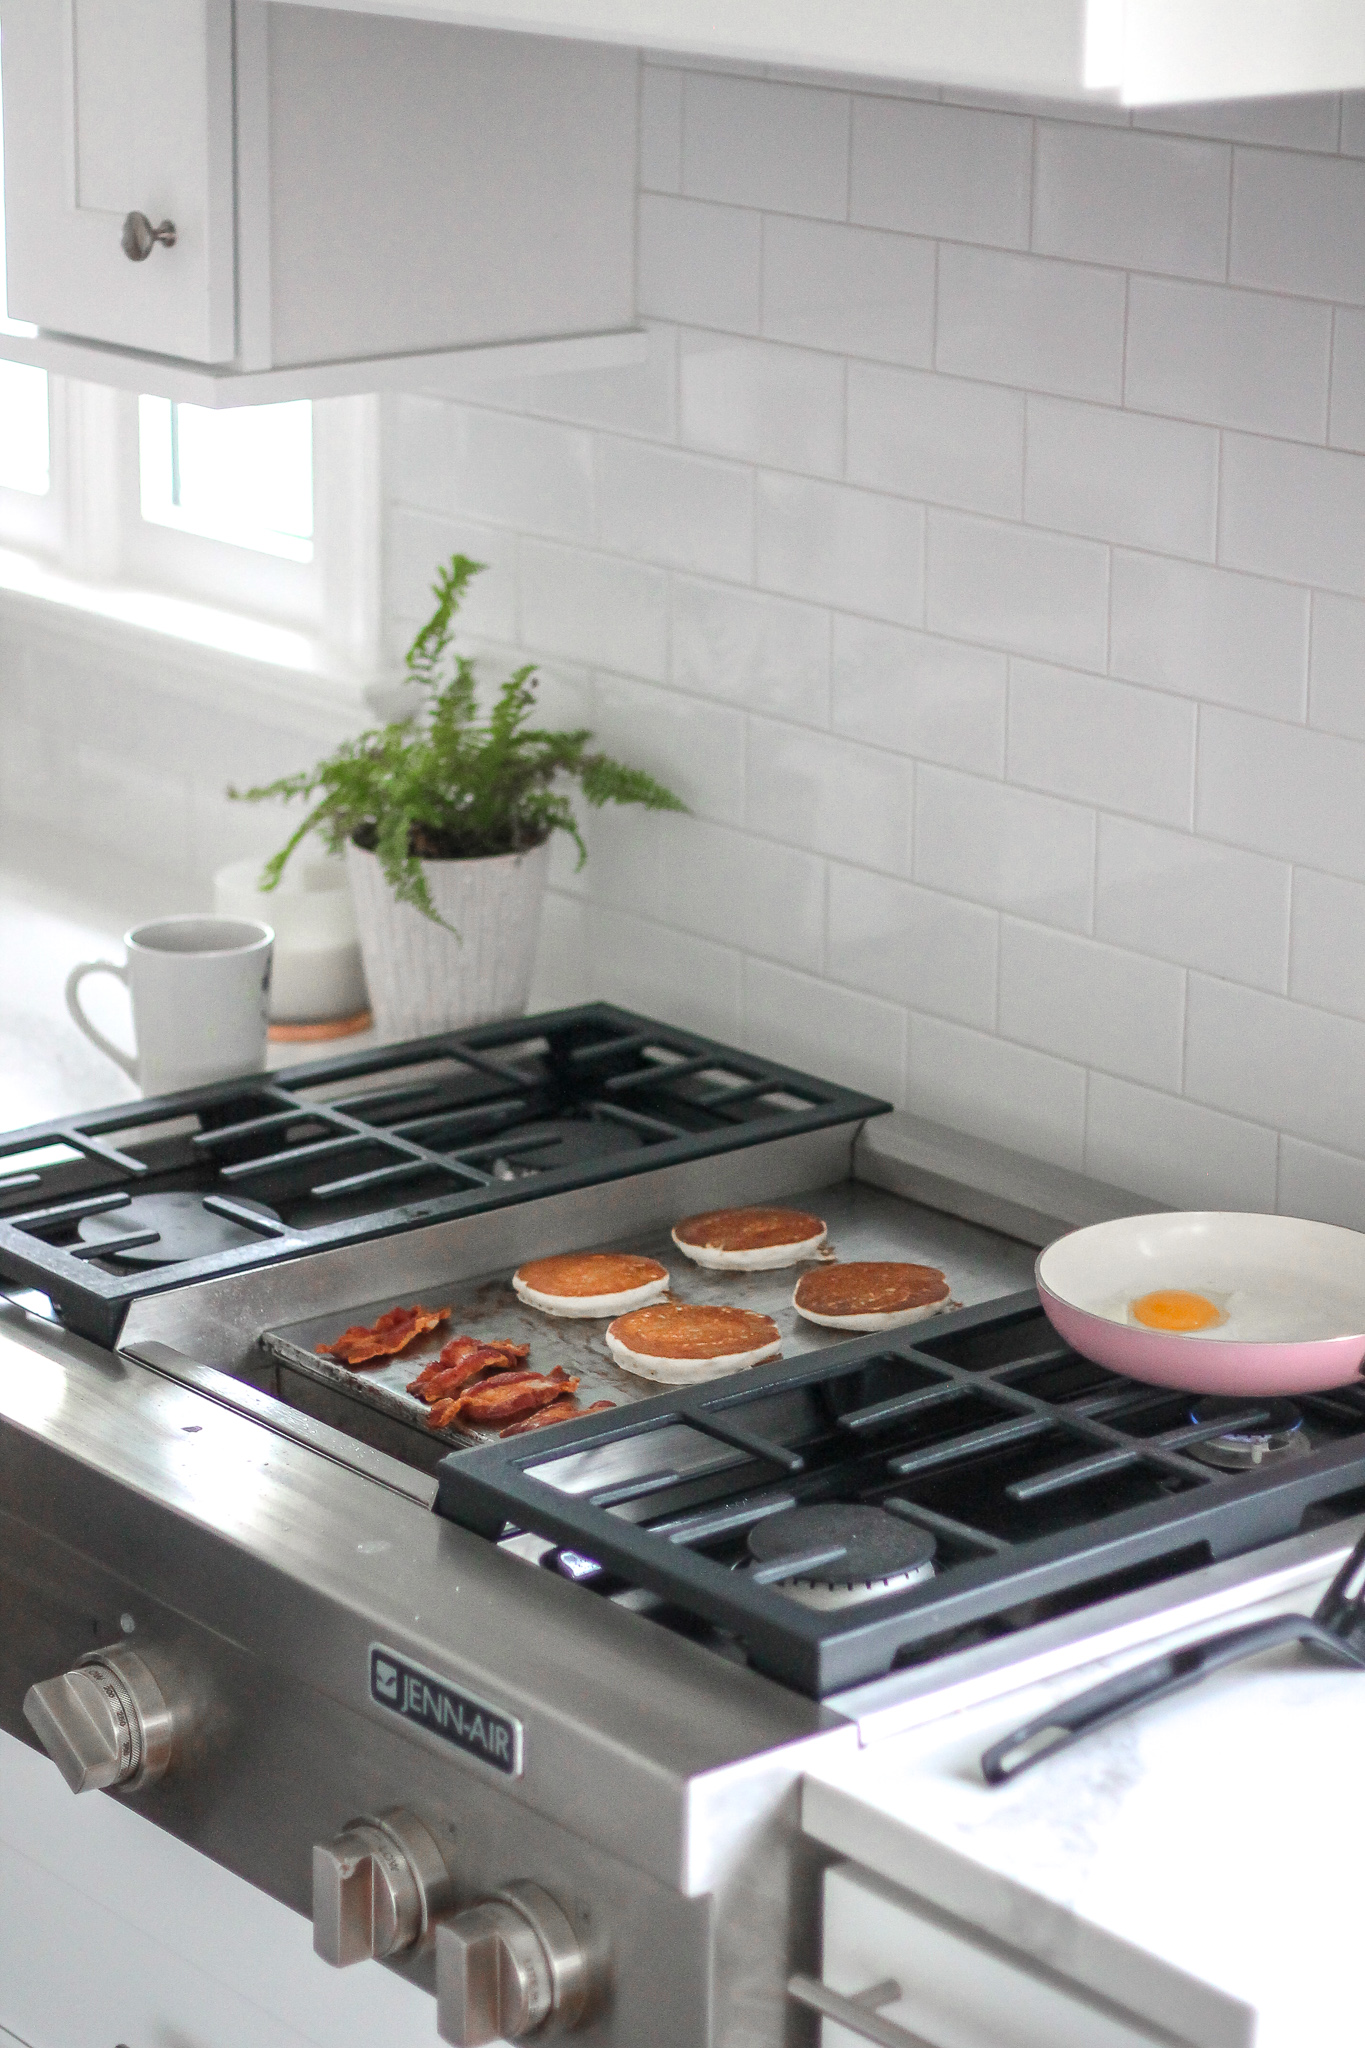 stove top with griddle